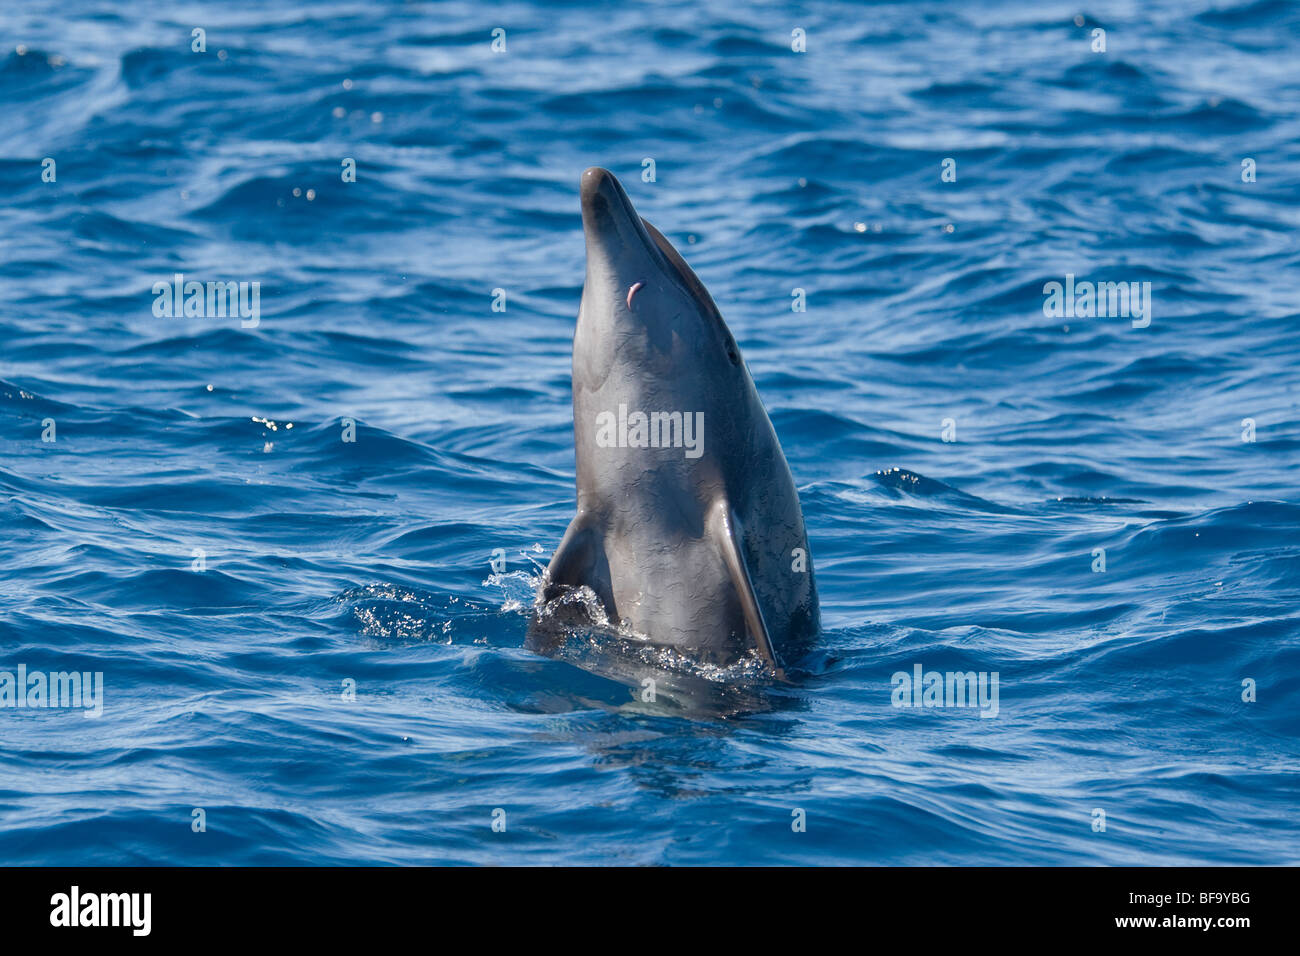 Common Bottlenose Dolphin, Tursiops truncatus, spyhopping, Costa Rica, Pacific Ocean. - Stock Image